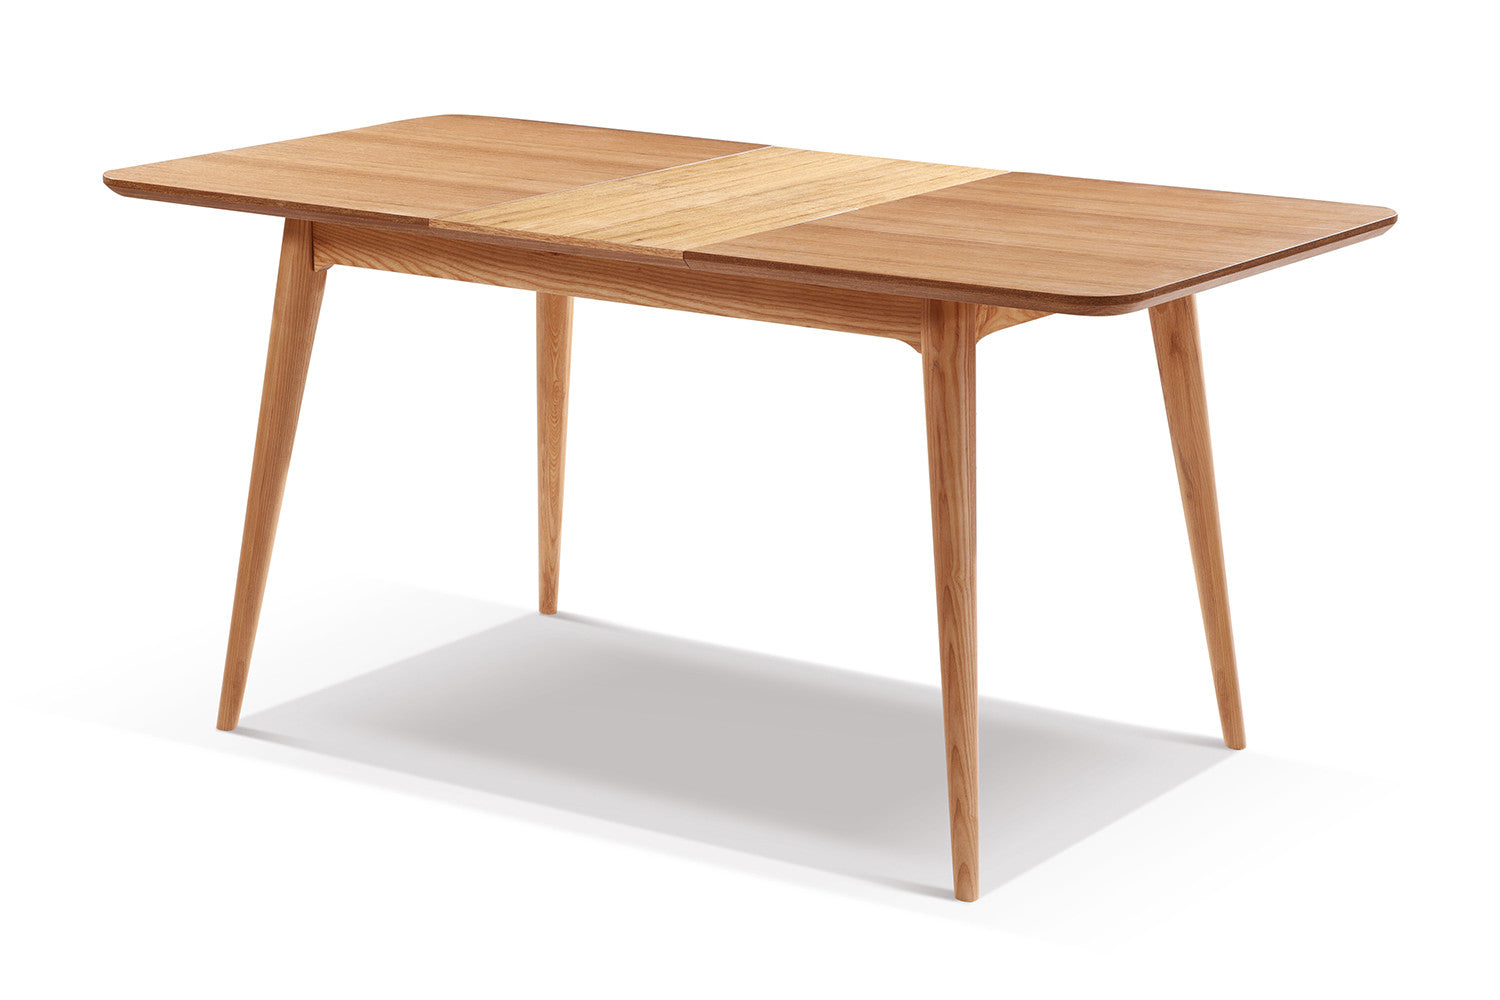 Table de salle manger extensible en bois adda dewarens for Table salle a manger rallonge design